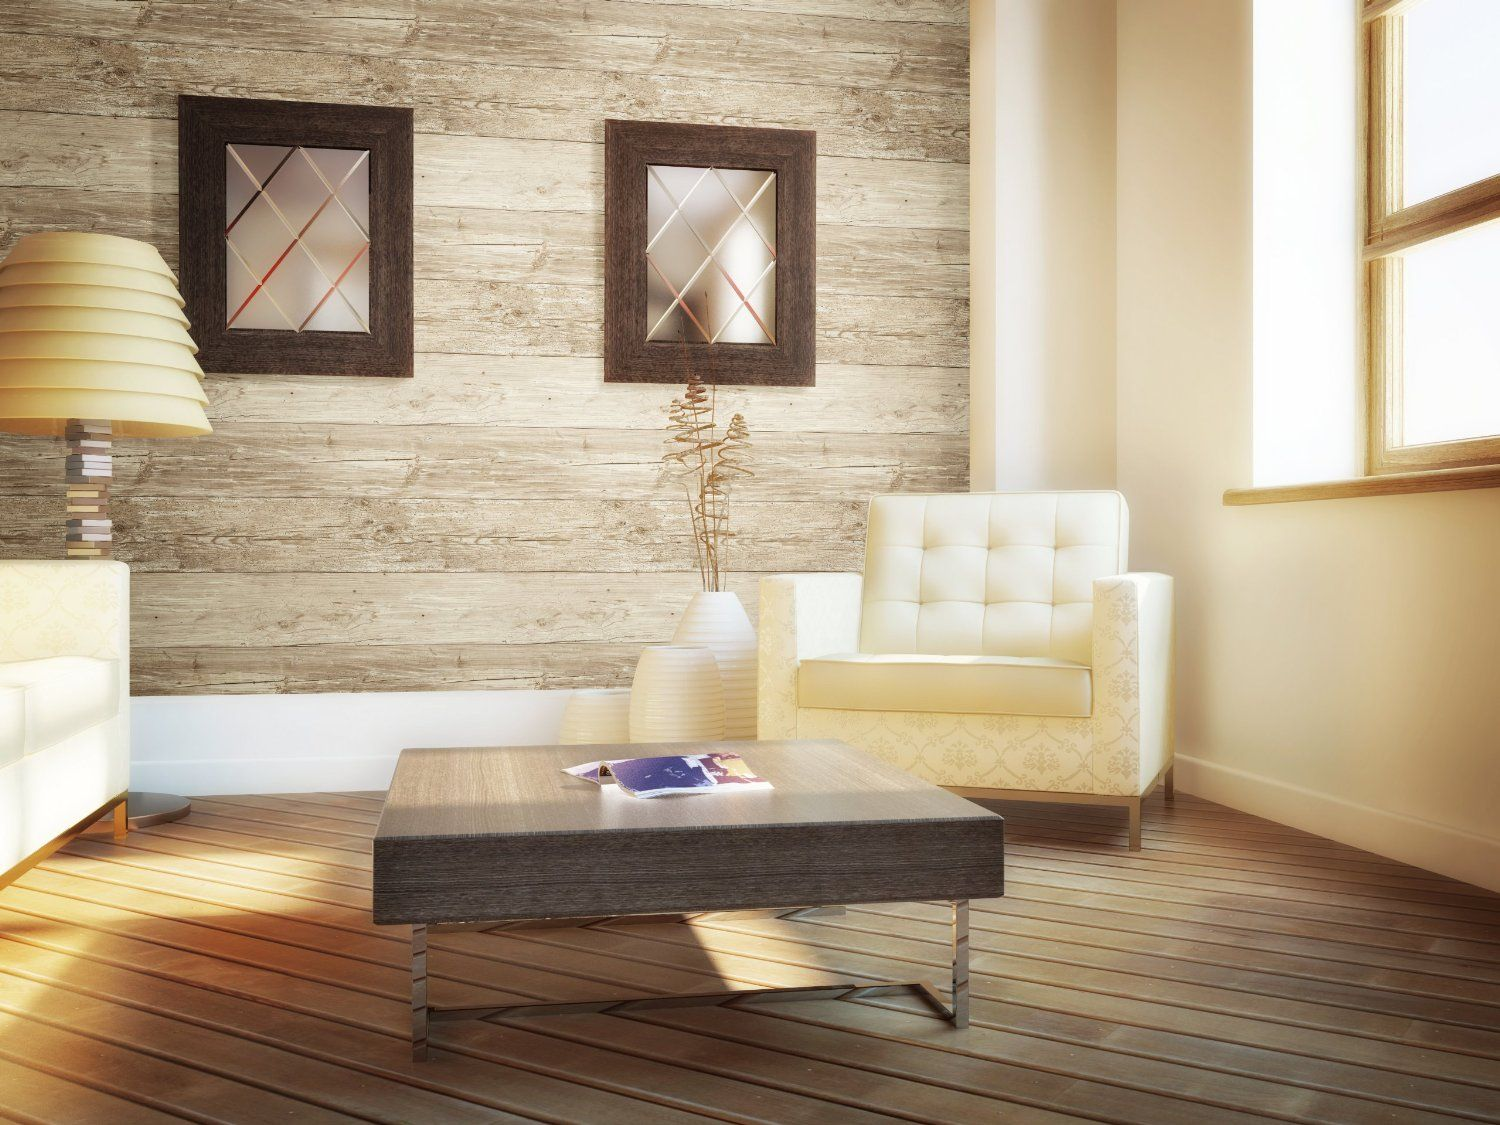 Wall In A Box Wib1010 Weathered Wallpaper Ash Pine Oak Sand Beige Brown Aged Wallpape Wood Wall Covering Living Room Design Inspiration Wood Wallpaper Living room wood background